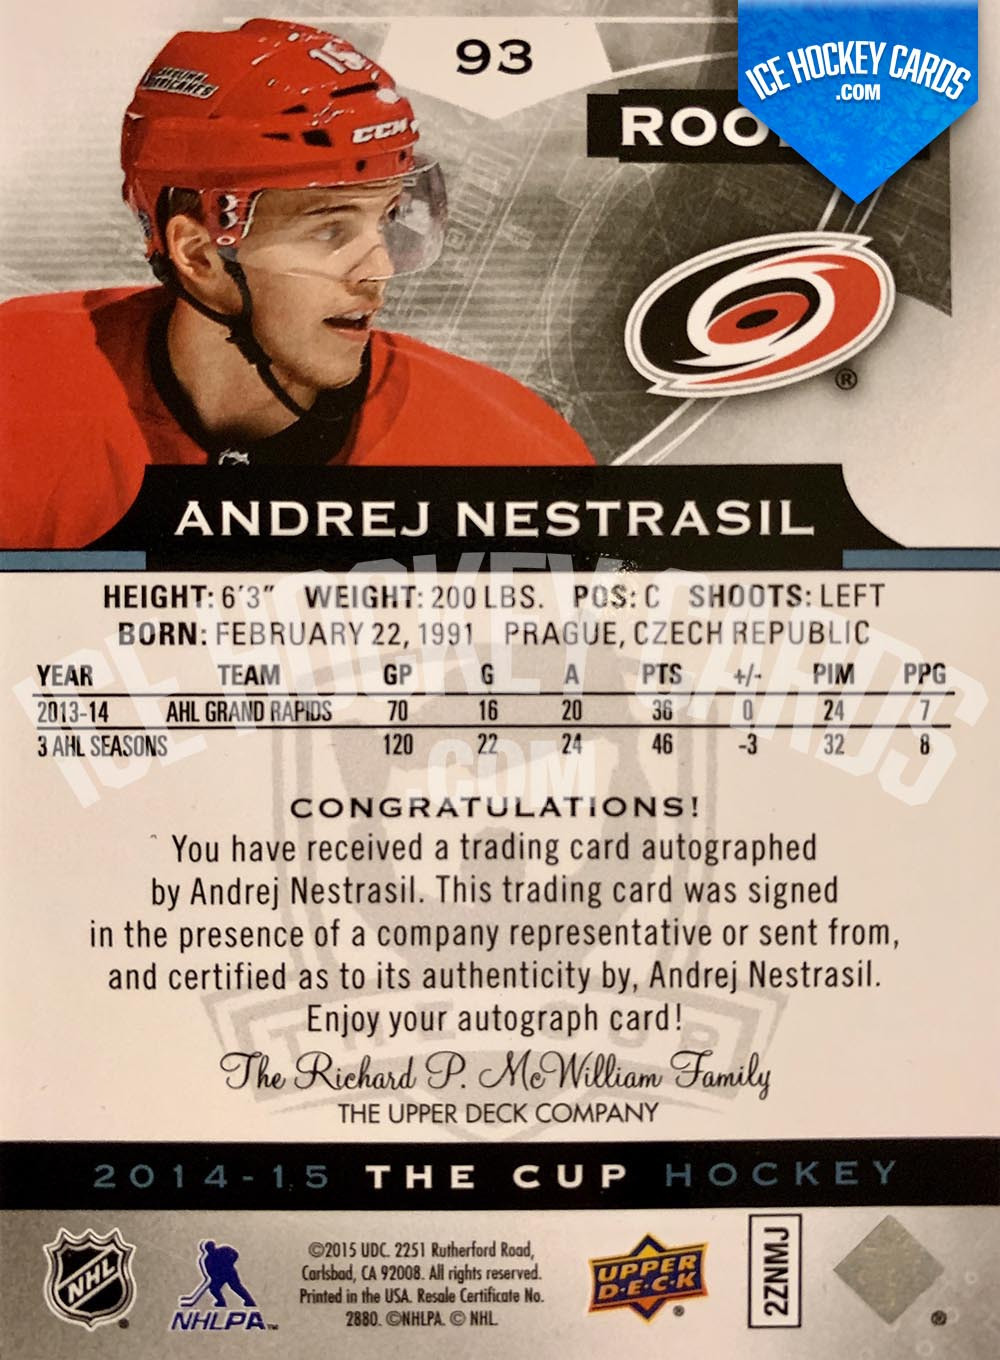 Upper Deck - The Cup 2014-15 - Andrej Nestrasil Rookie Autograph Card back